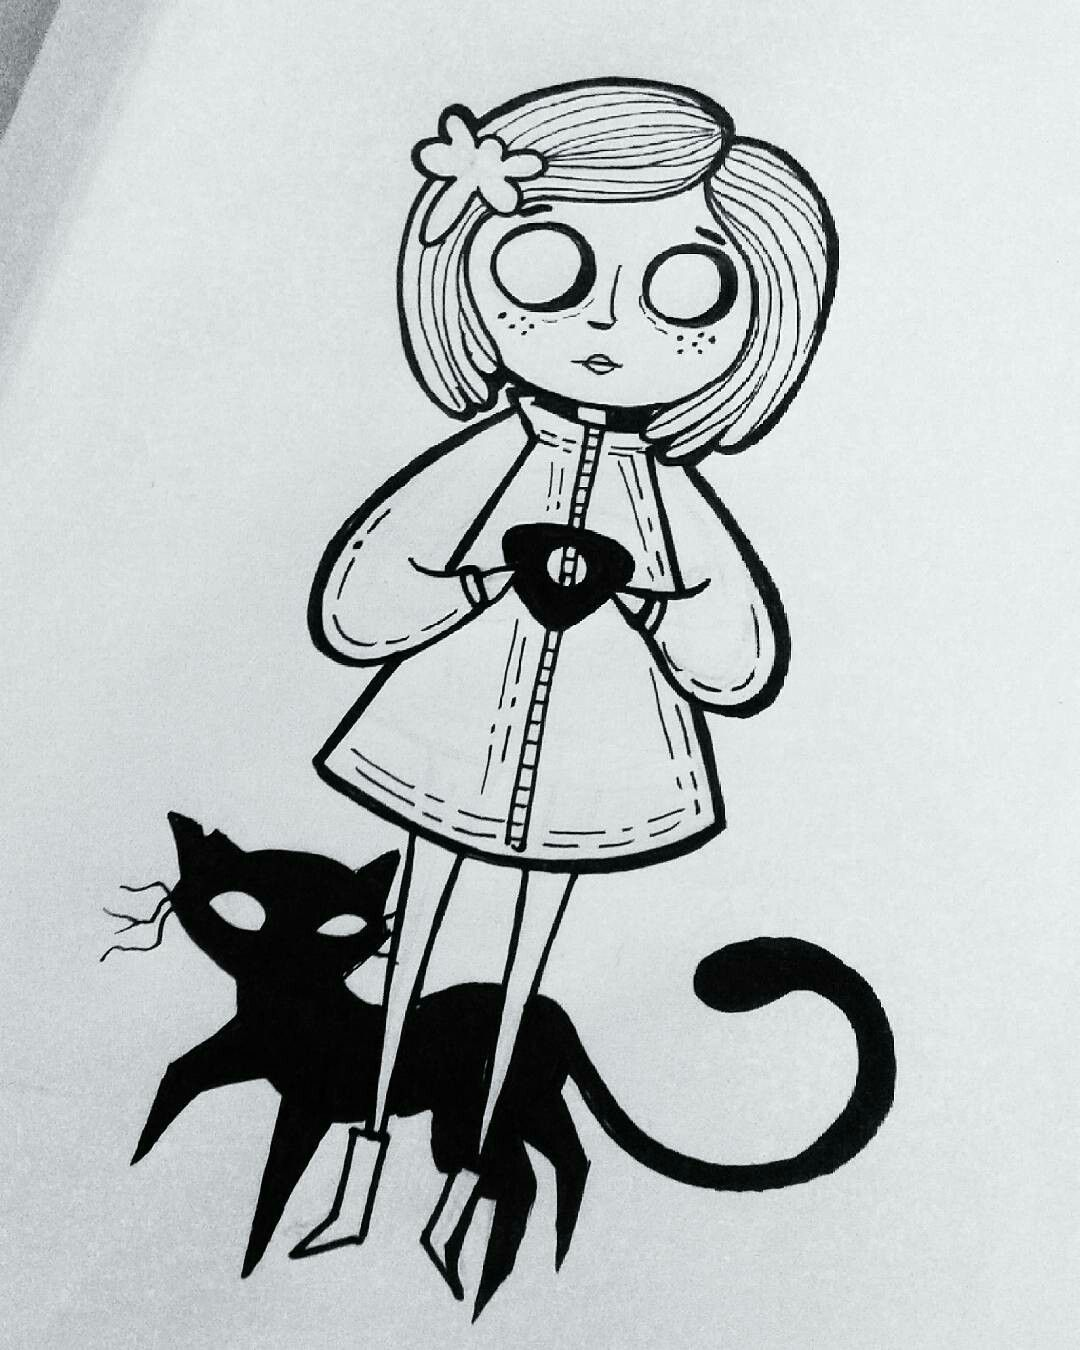 Pin By Brooklyn Taylor On Art Of The Body Coraline Art Coraline Tattoo Art Sketches